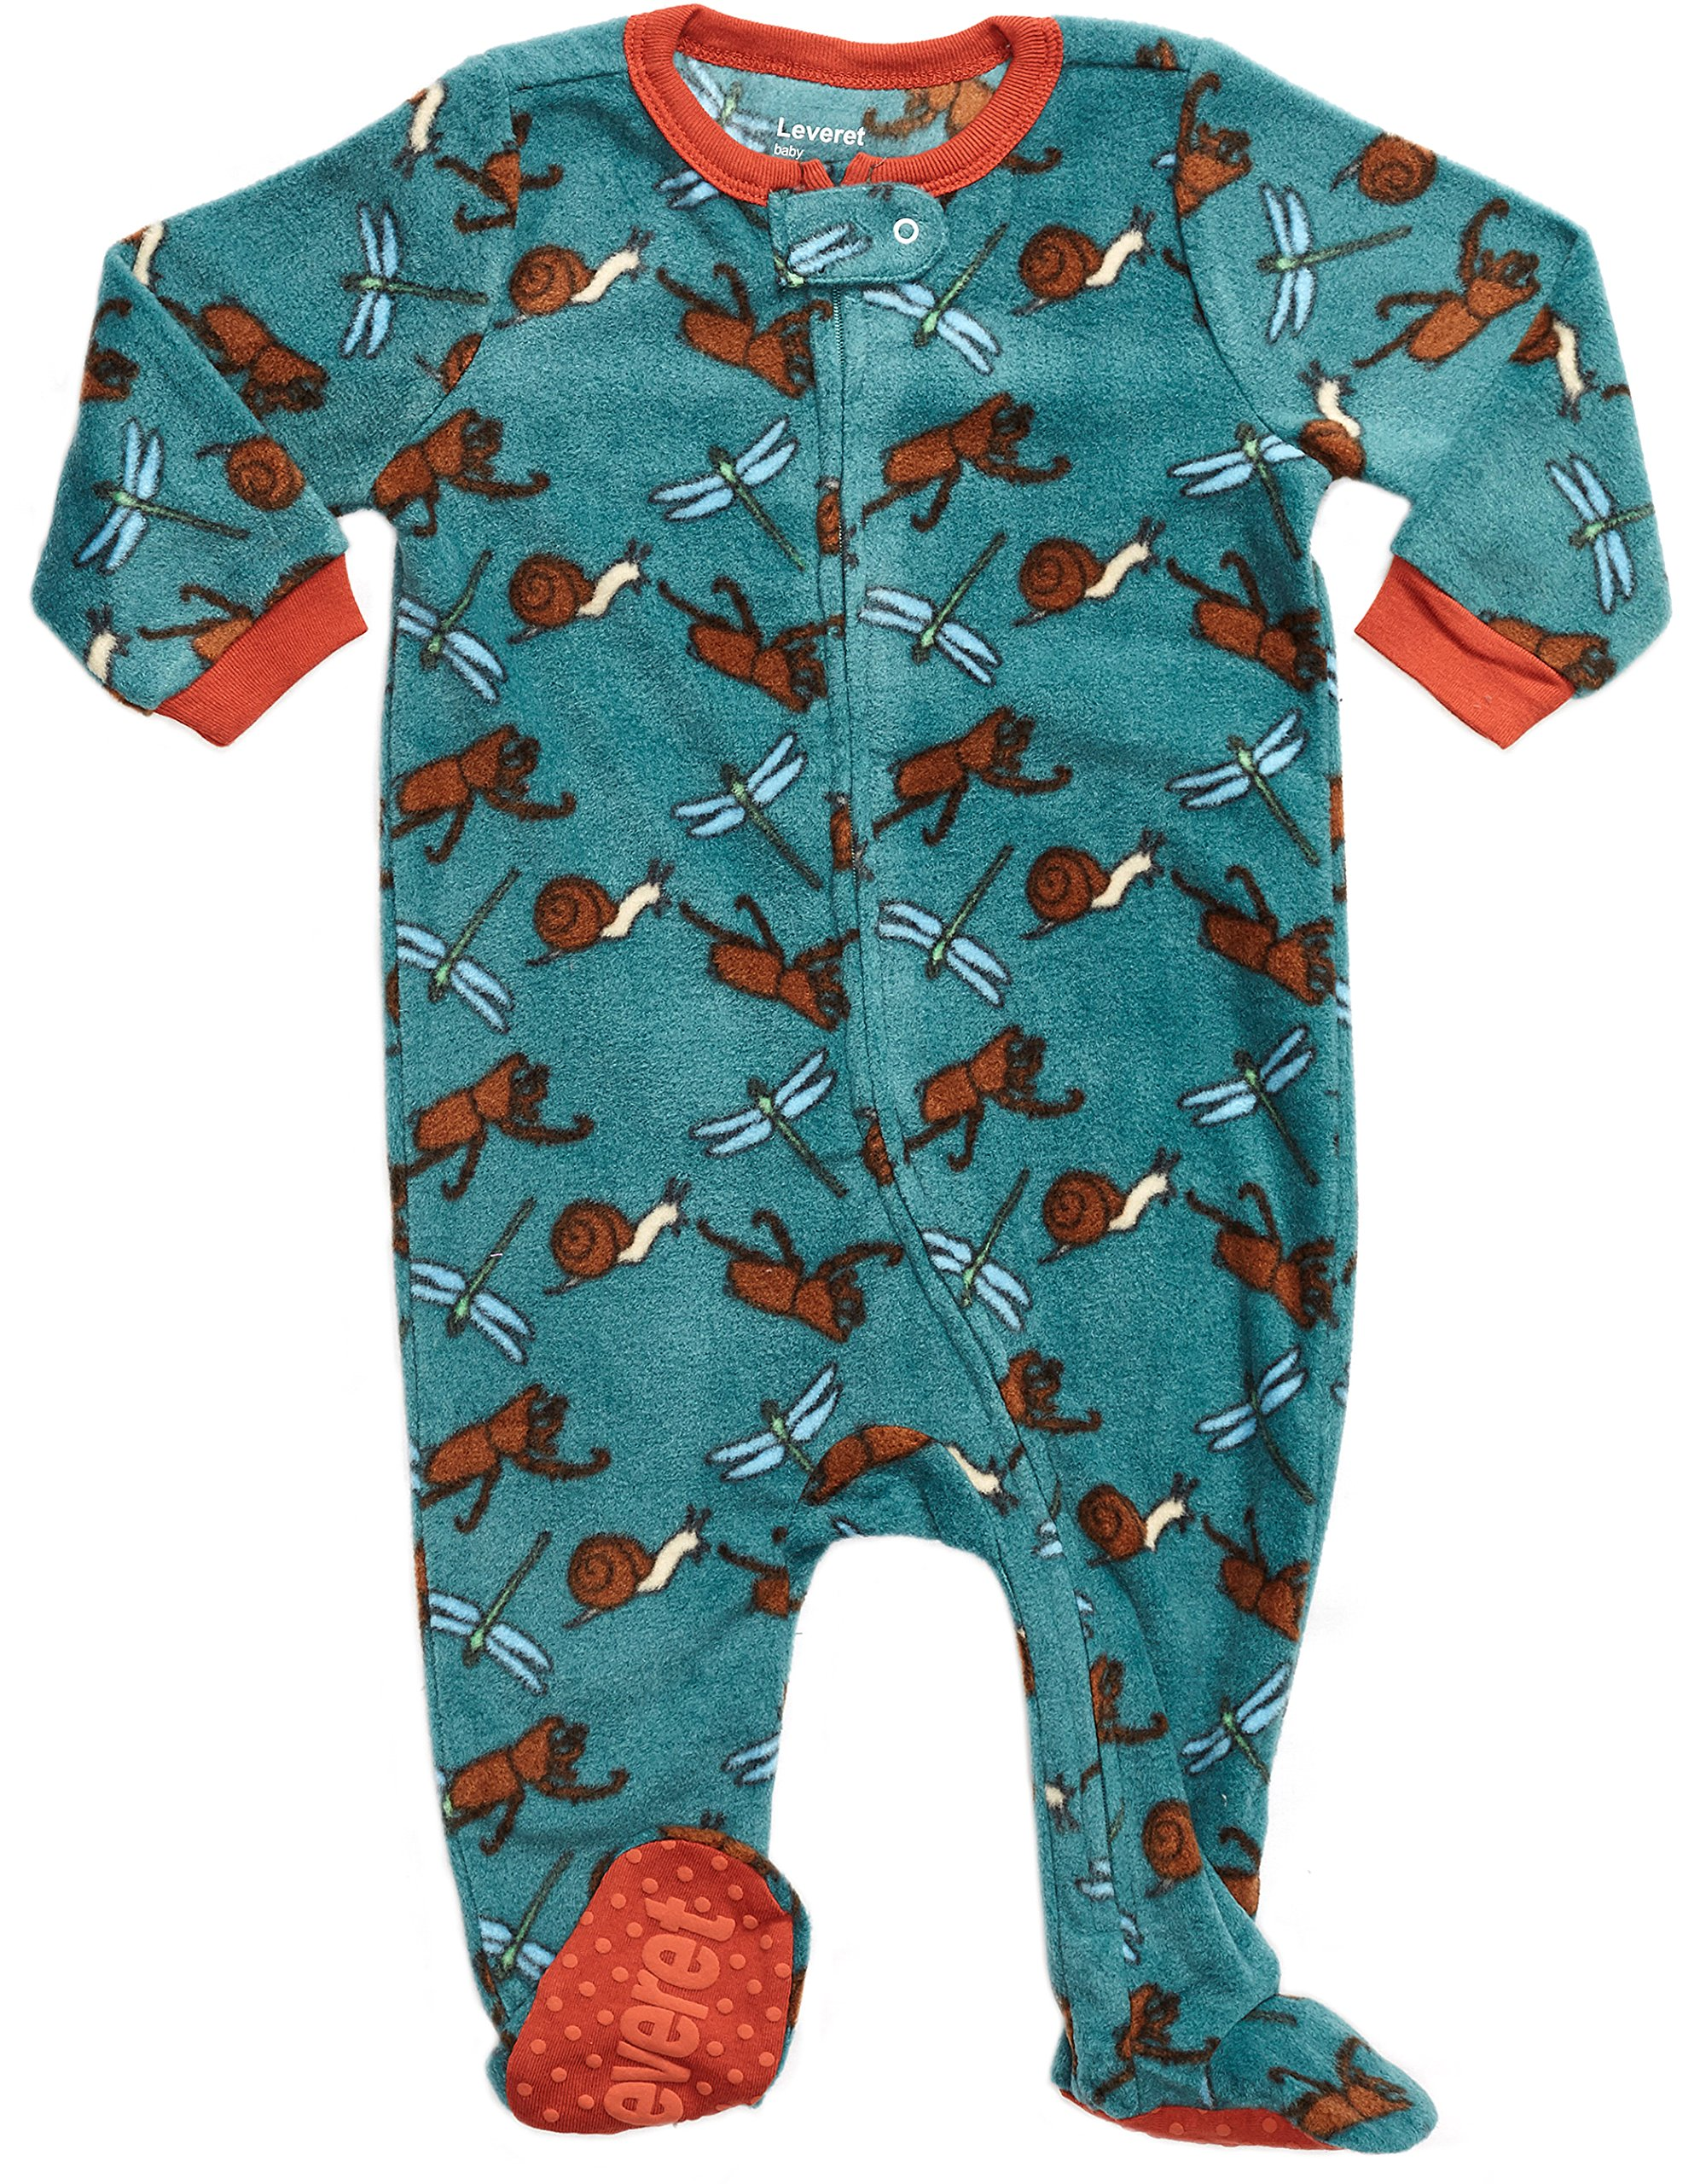 0d6a12119 Leveret Fleece Baby Boys Footed Pajamas Sleeper Kids   Toddler ...